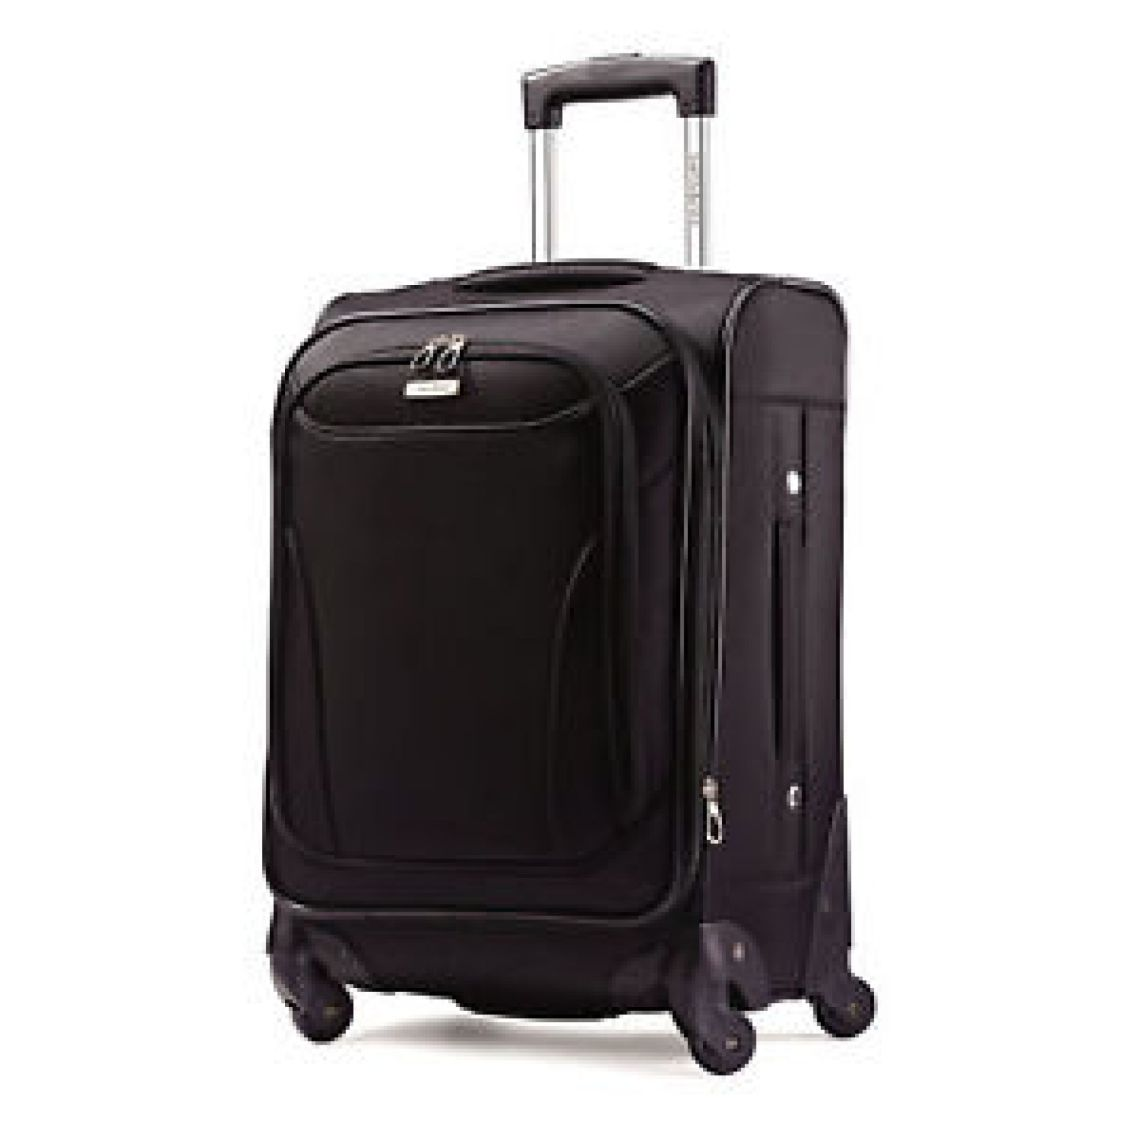 Samsonite Bartlett Spinner - Luggage | eBay